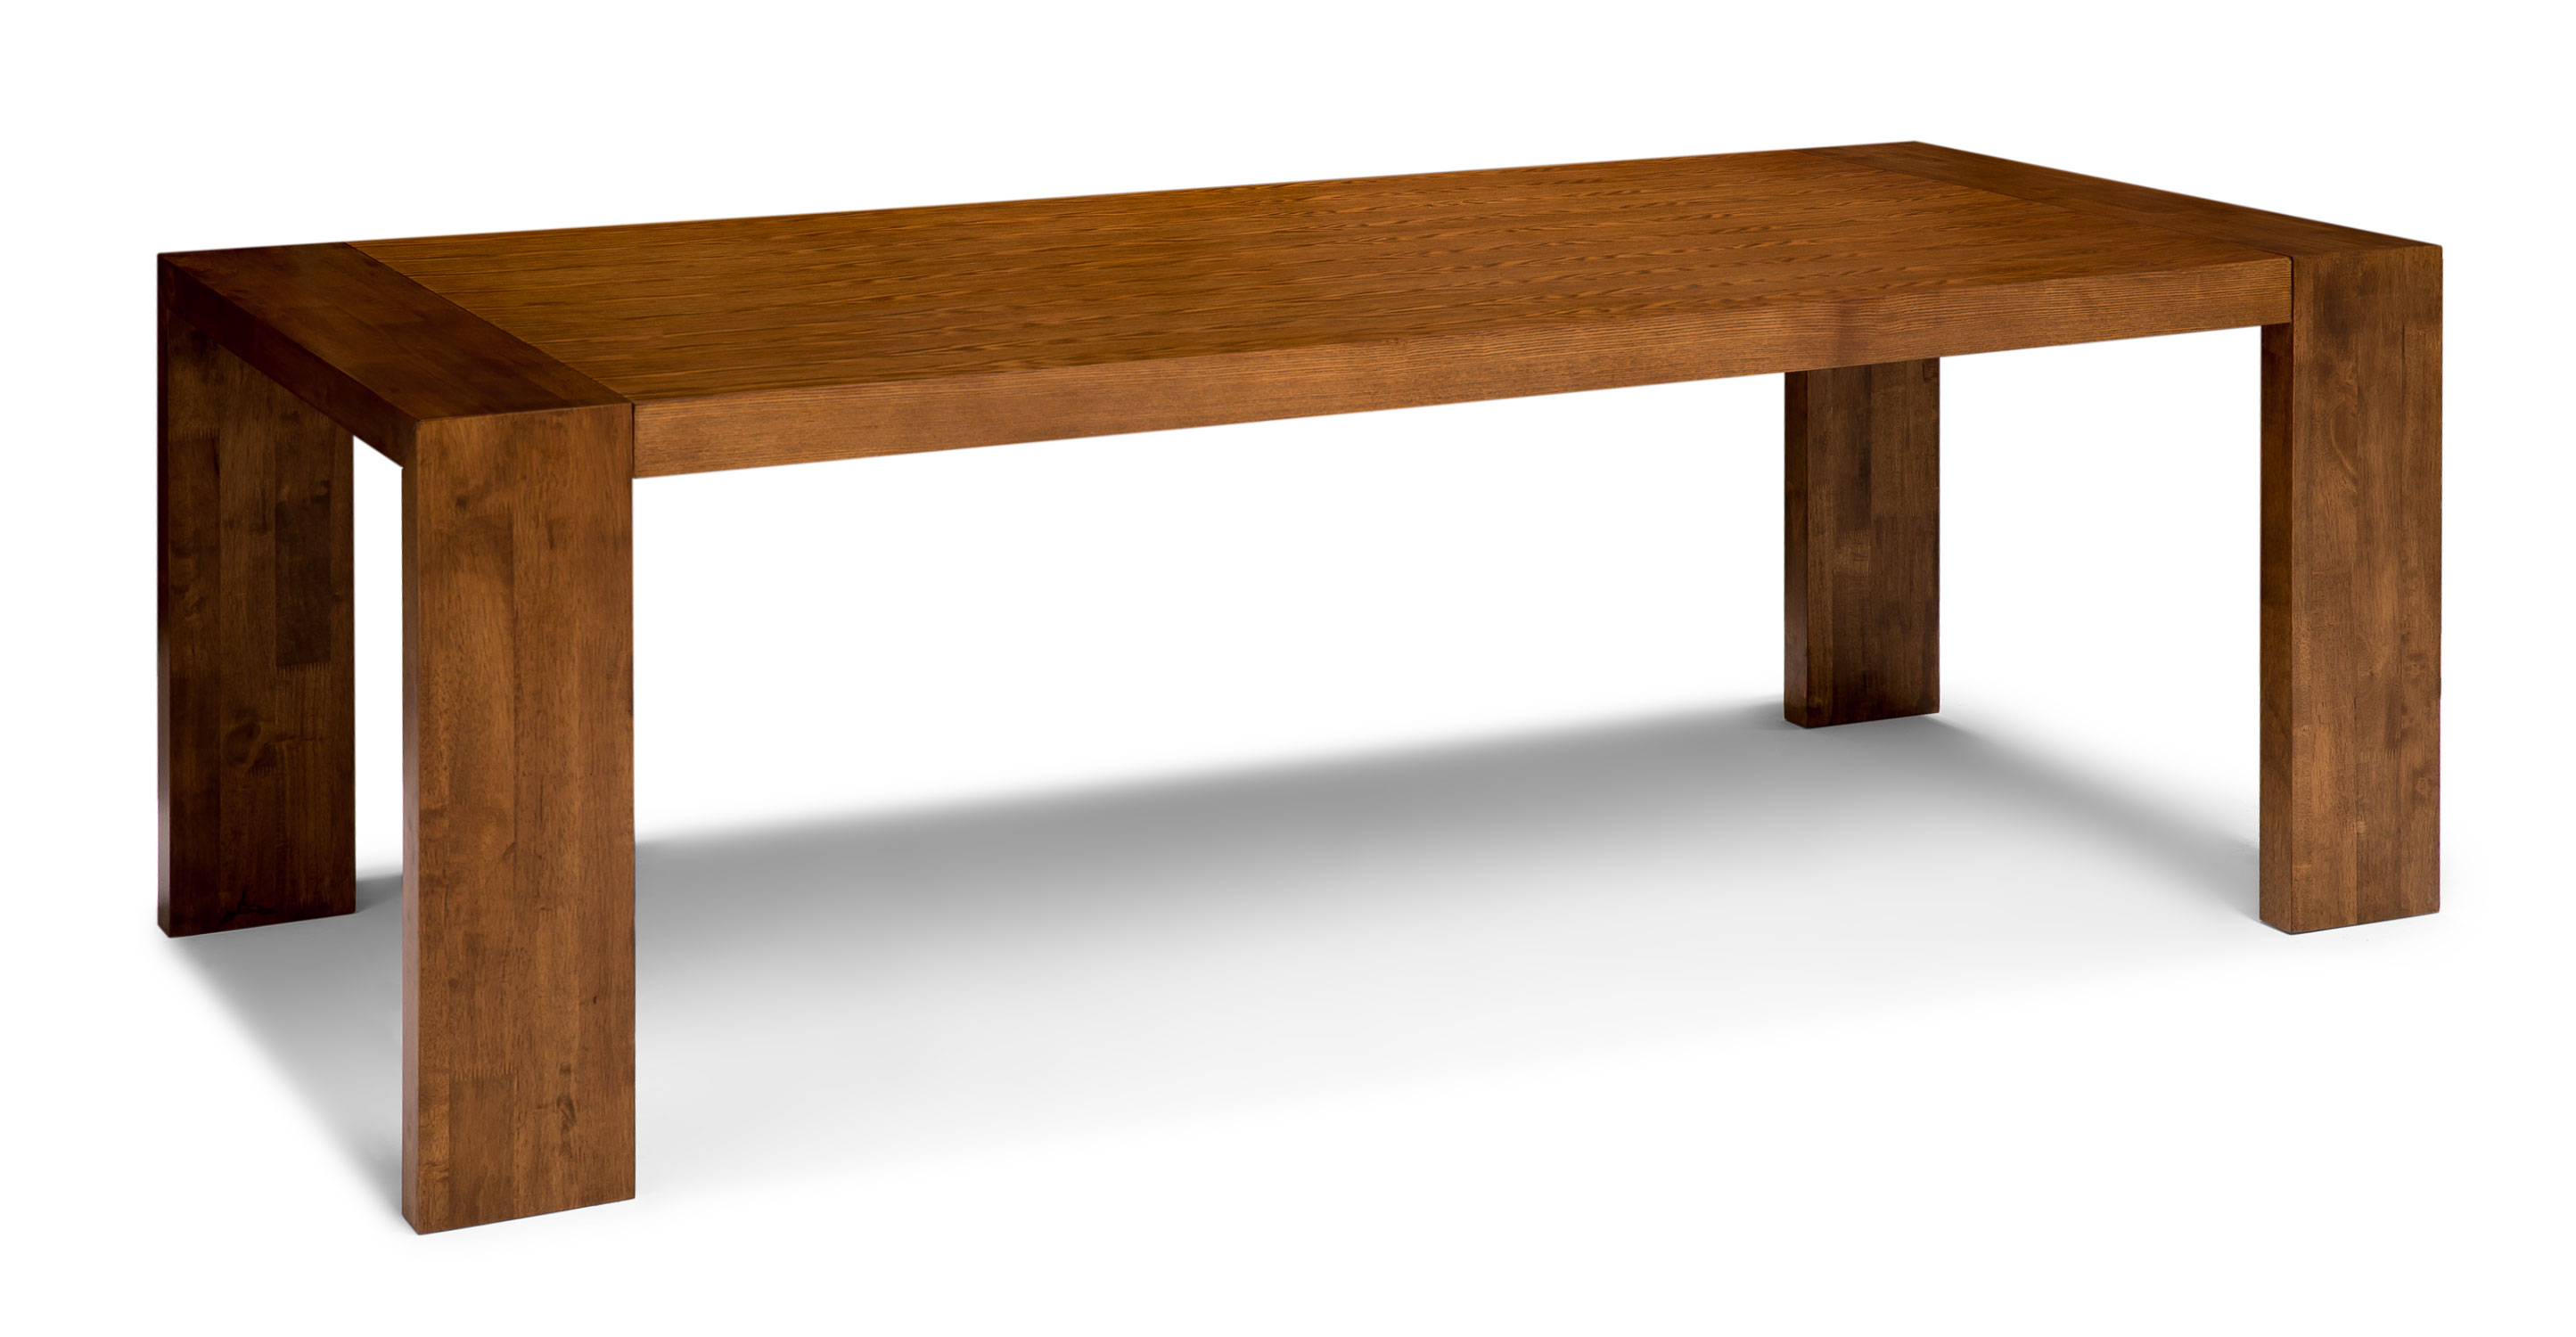 clarkson cocoa wood dining table mid century kitchen table Clarkson Cocoa Wood Dining Table Dining Tables Article Modern Mid Century and Scandinavian Furniture